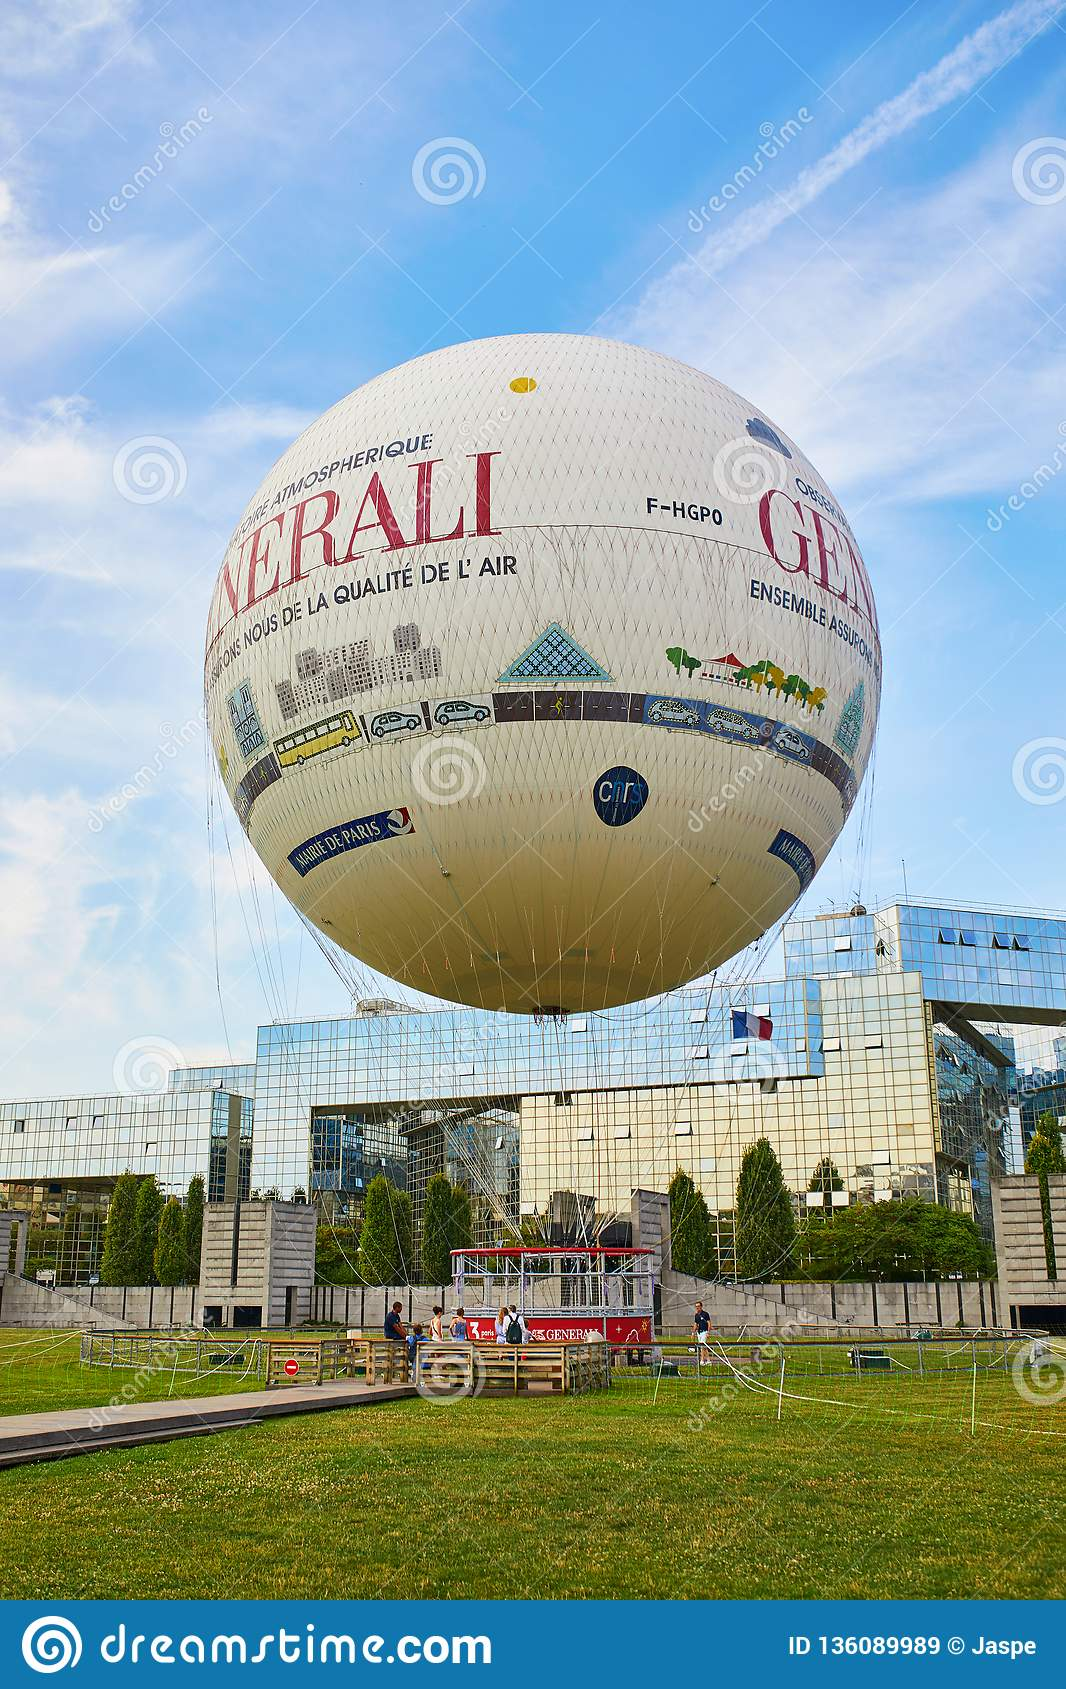 PARIS, FRANCE - 19 JUILLET 2018 : ballon à air chaud en Parc Andre Citroen dans le 15ème arrondissement de Paris, France